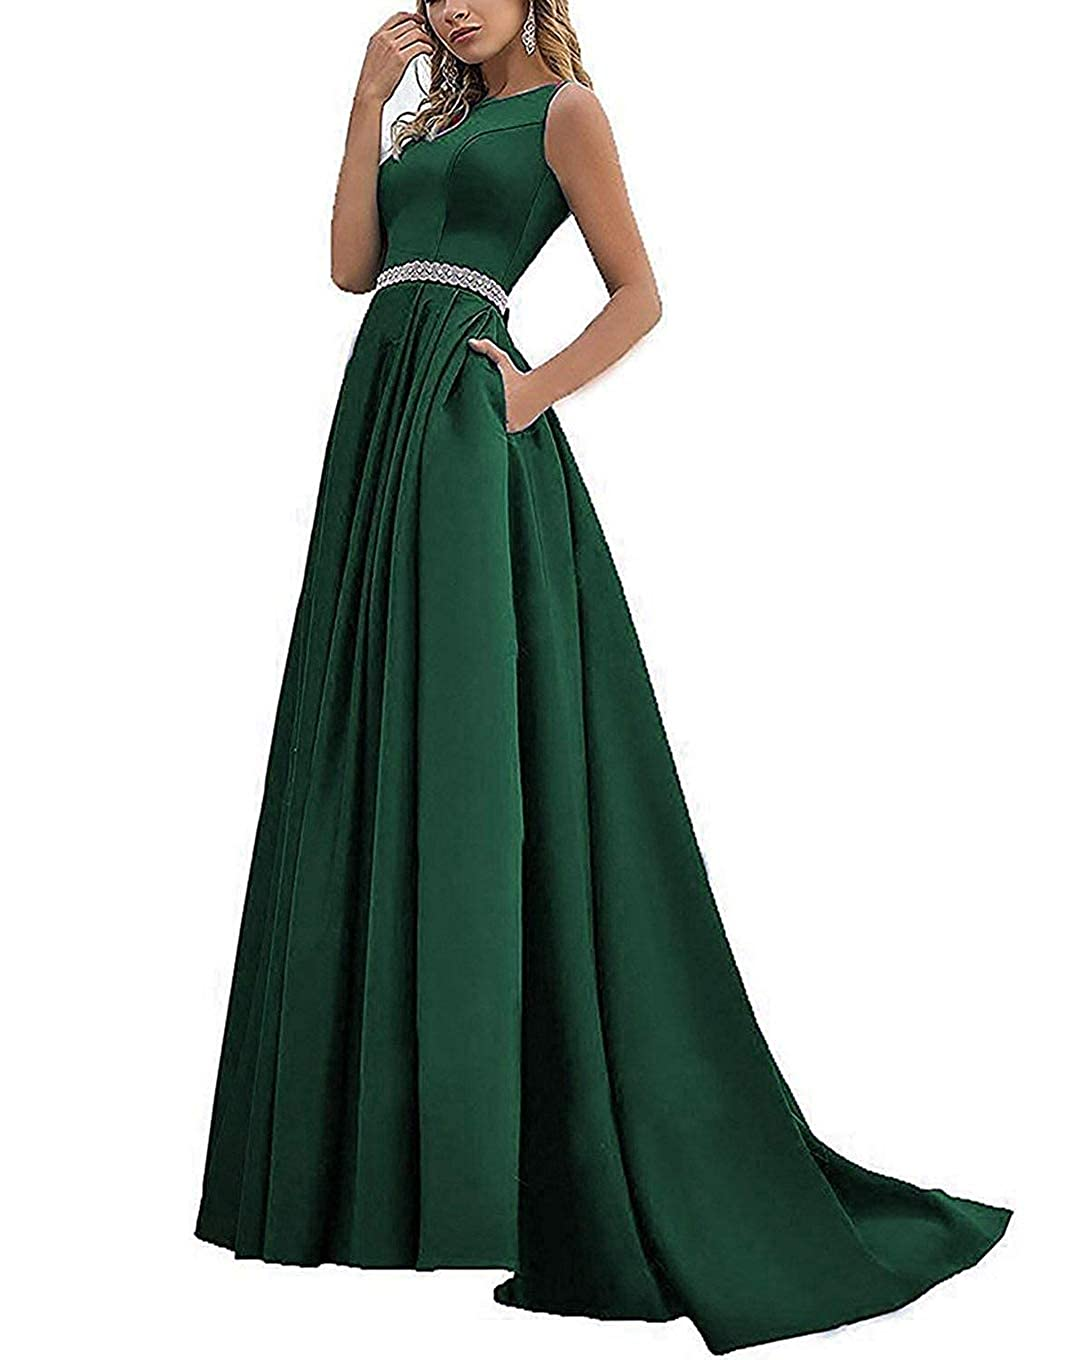 Dark Green Beaded Satin Prom Dresses Long with Pockets Jewel Neckline Princess Ball Gown